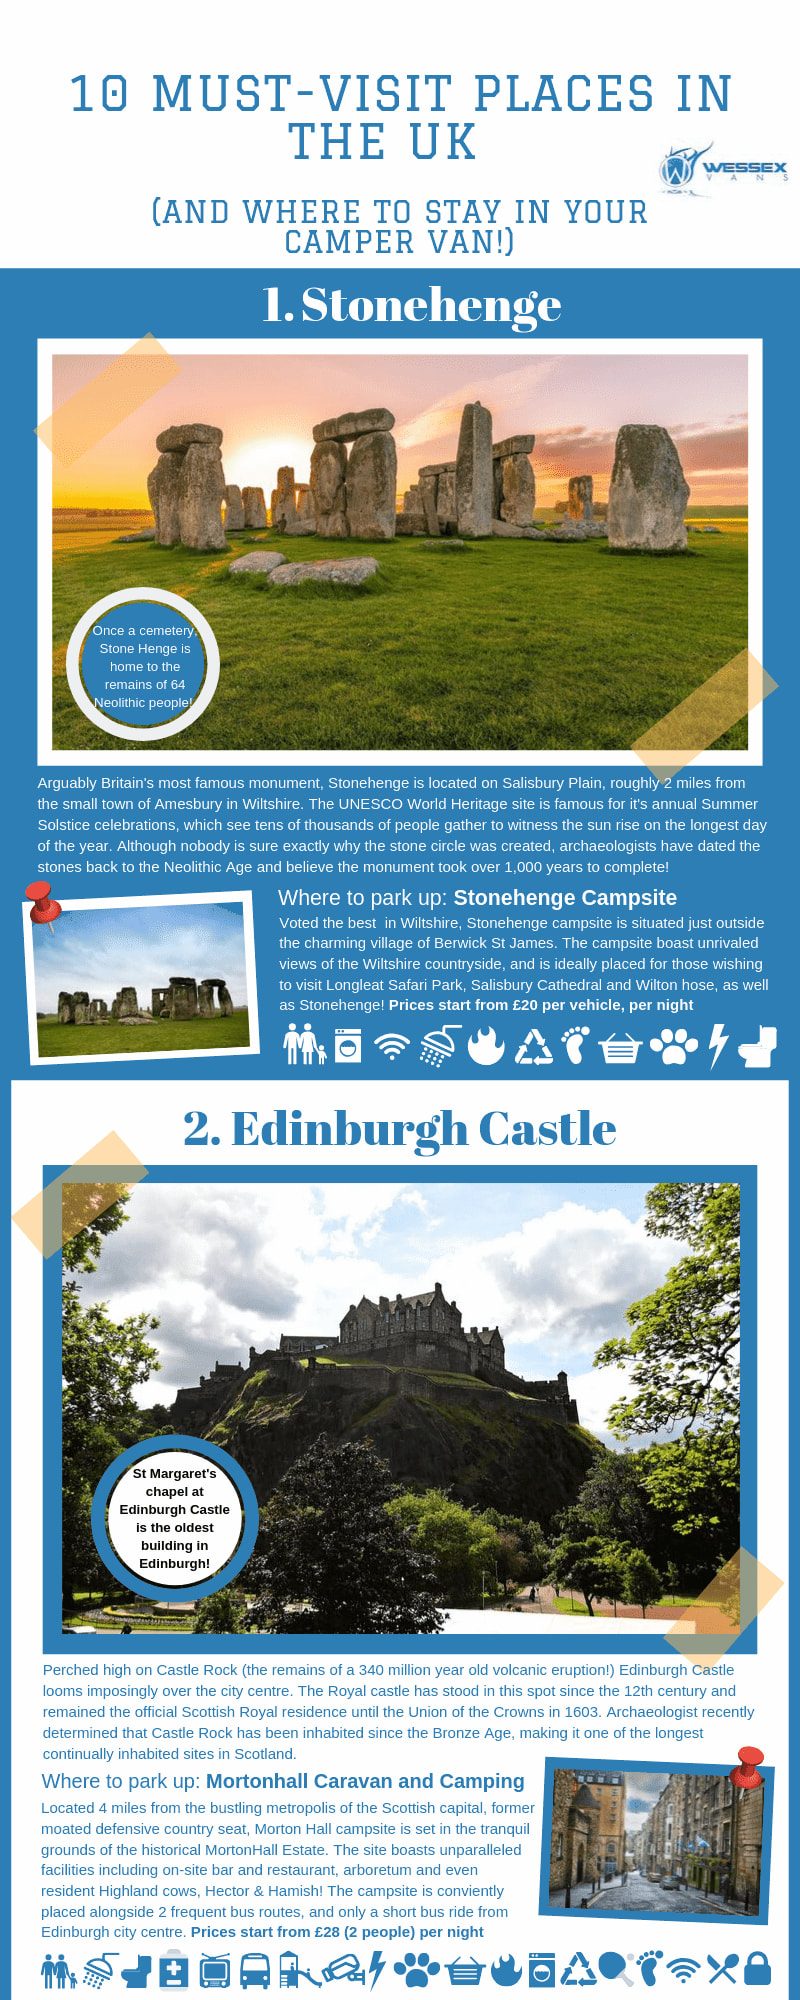 Do You Have a Campervan? Check out the Best Destinations for you In the UK infographic